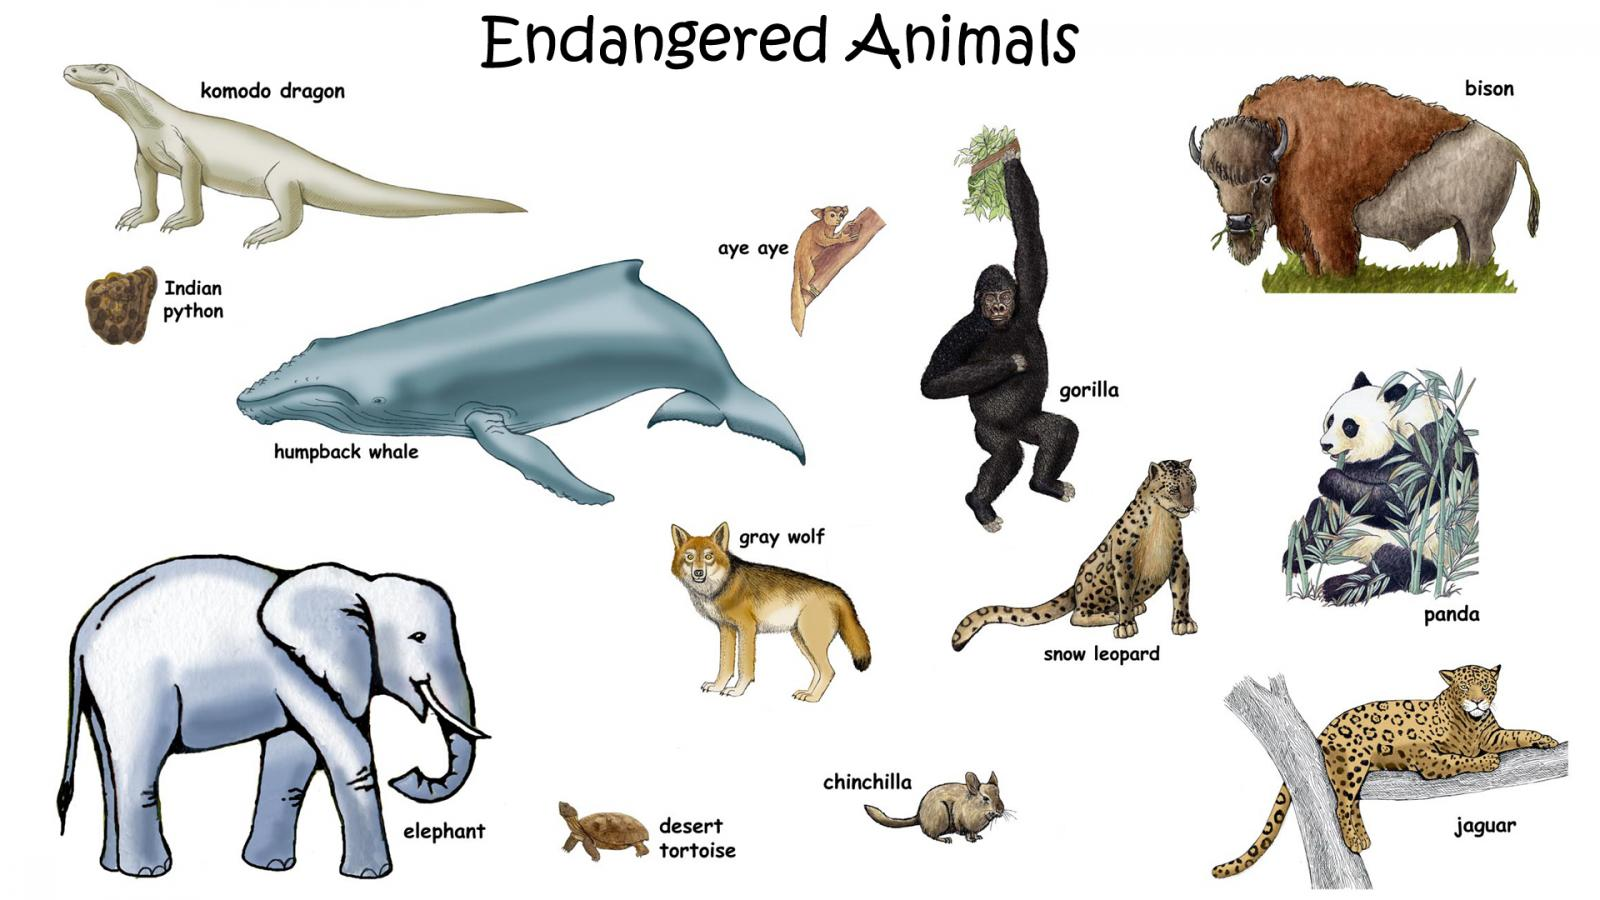 animal extinction among endangered species Animal extinction among endangered species topics: extinction an endangered species is a population extinct organism which is at risk of becoming extinct.